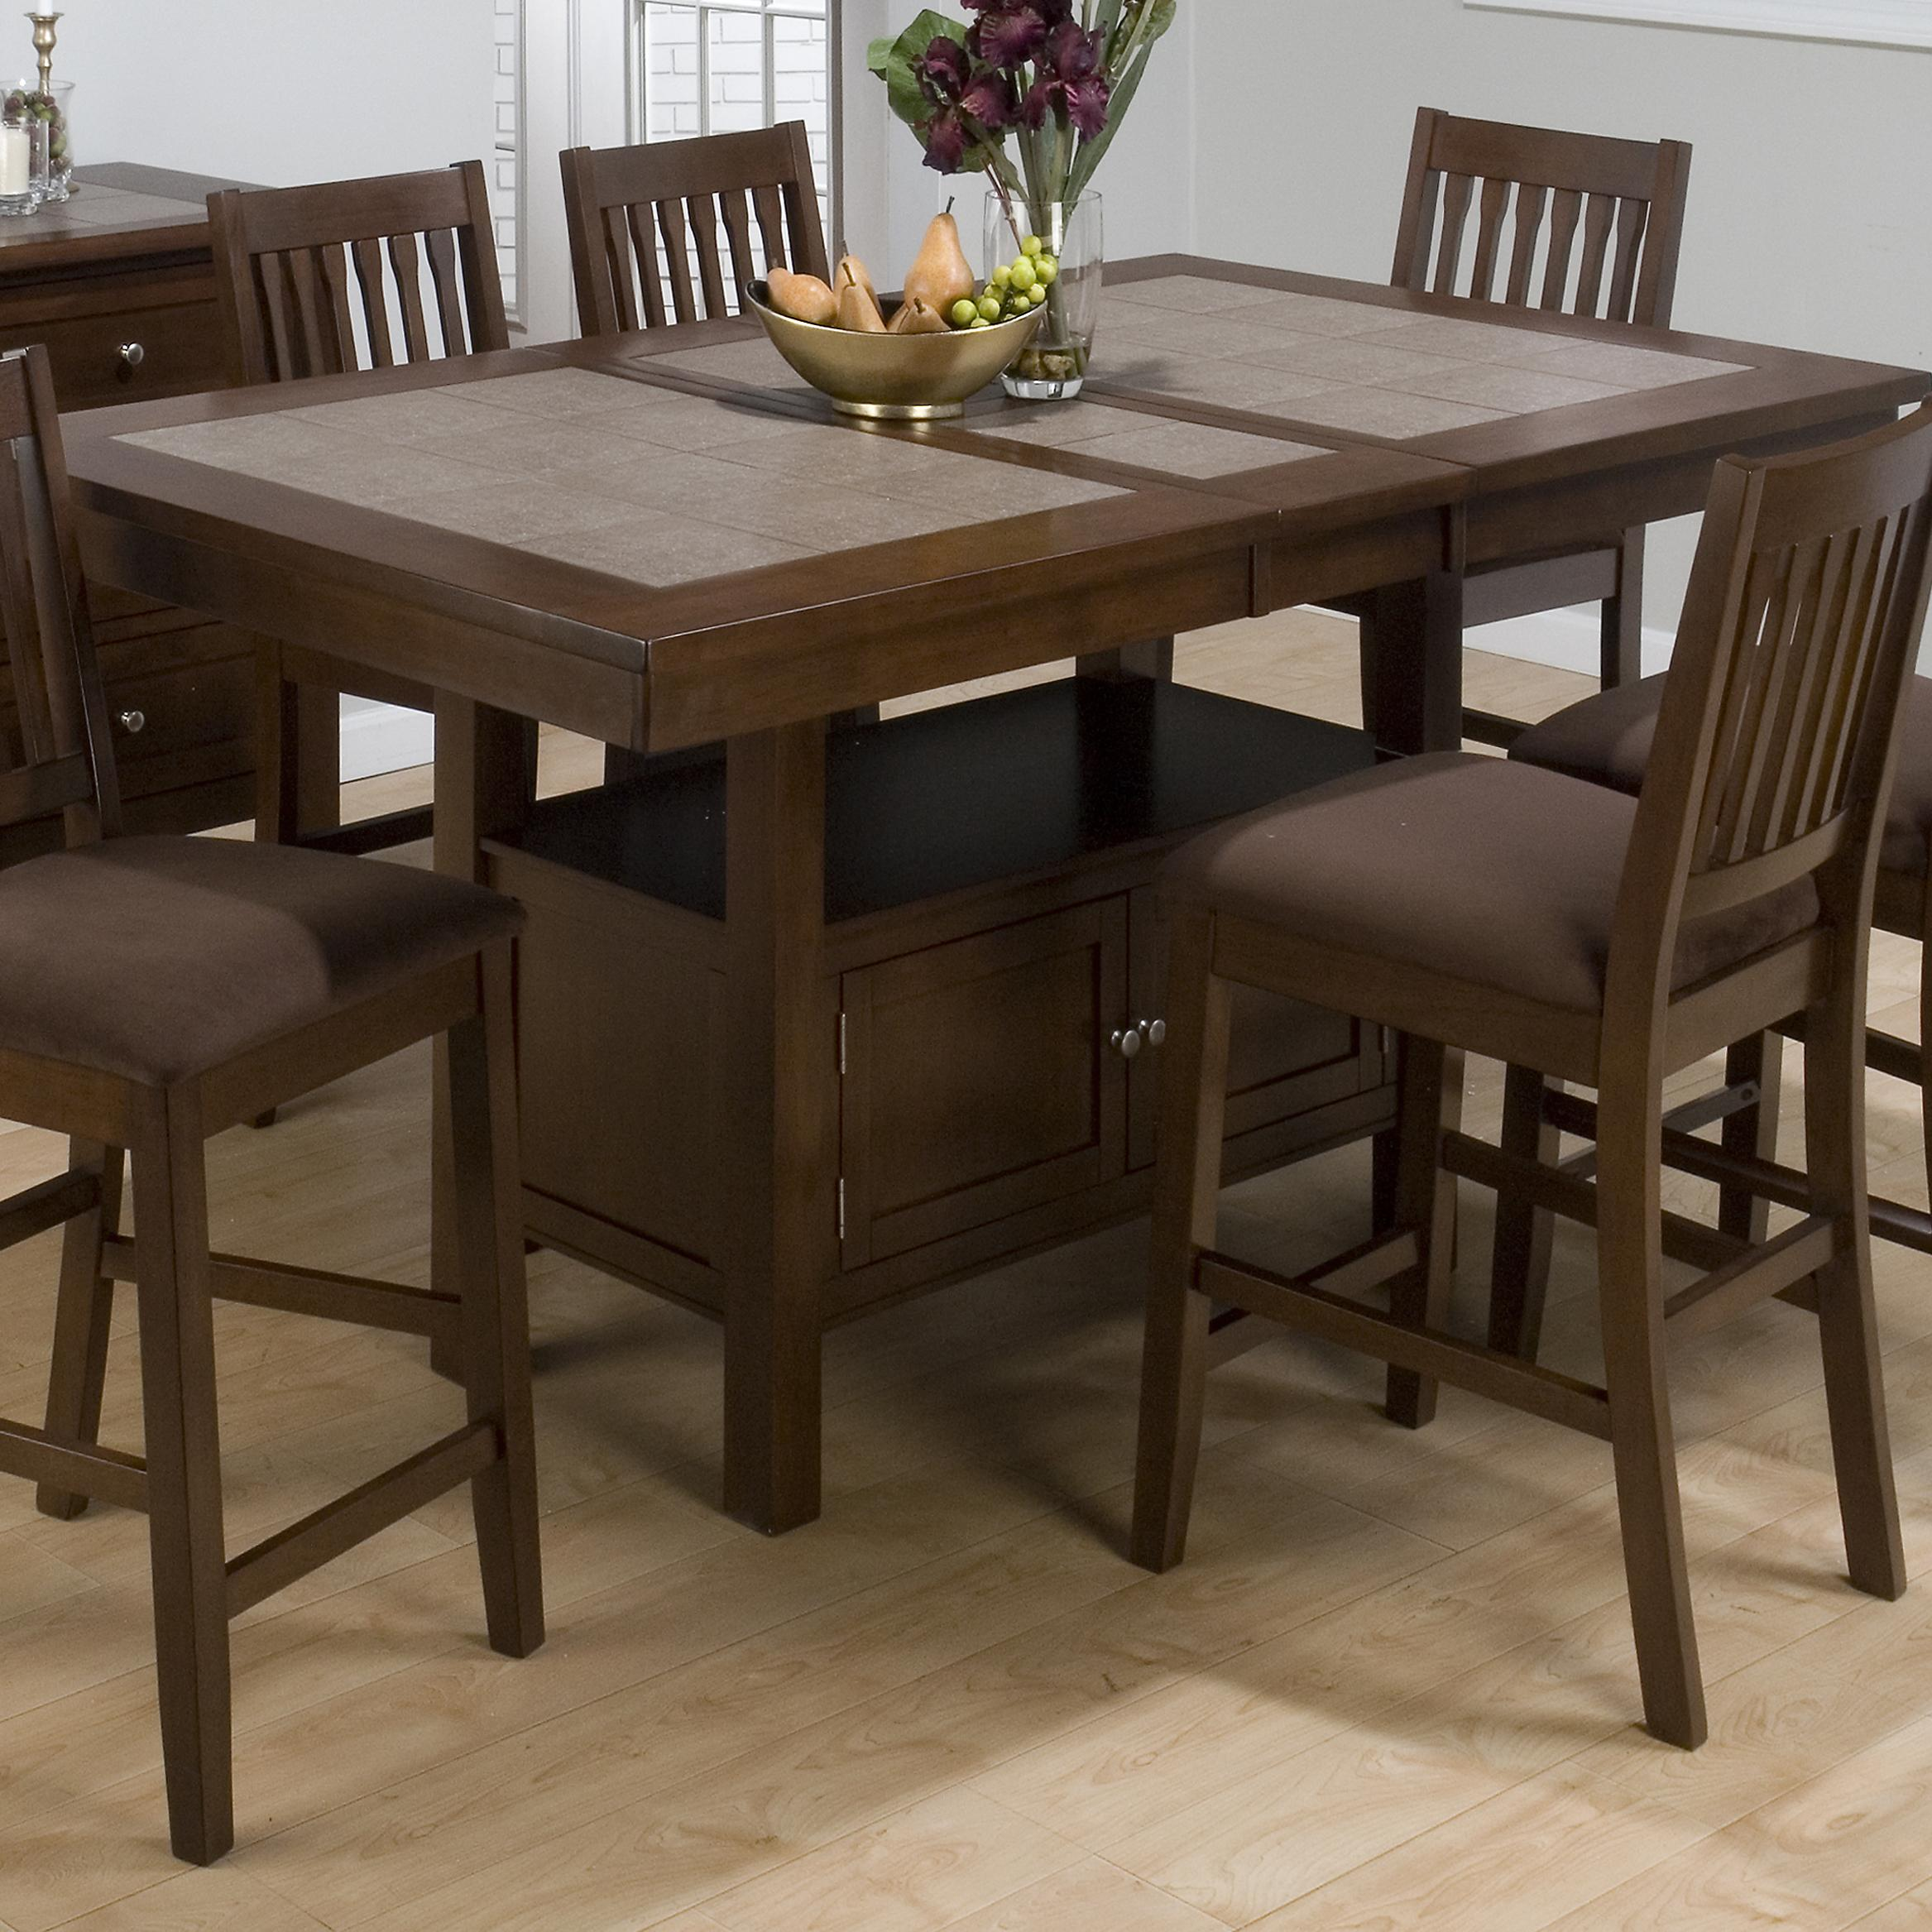 Morris Home Furnishings Derby Derby Dining Table Top & Base - Item Number: 976-72B+72T